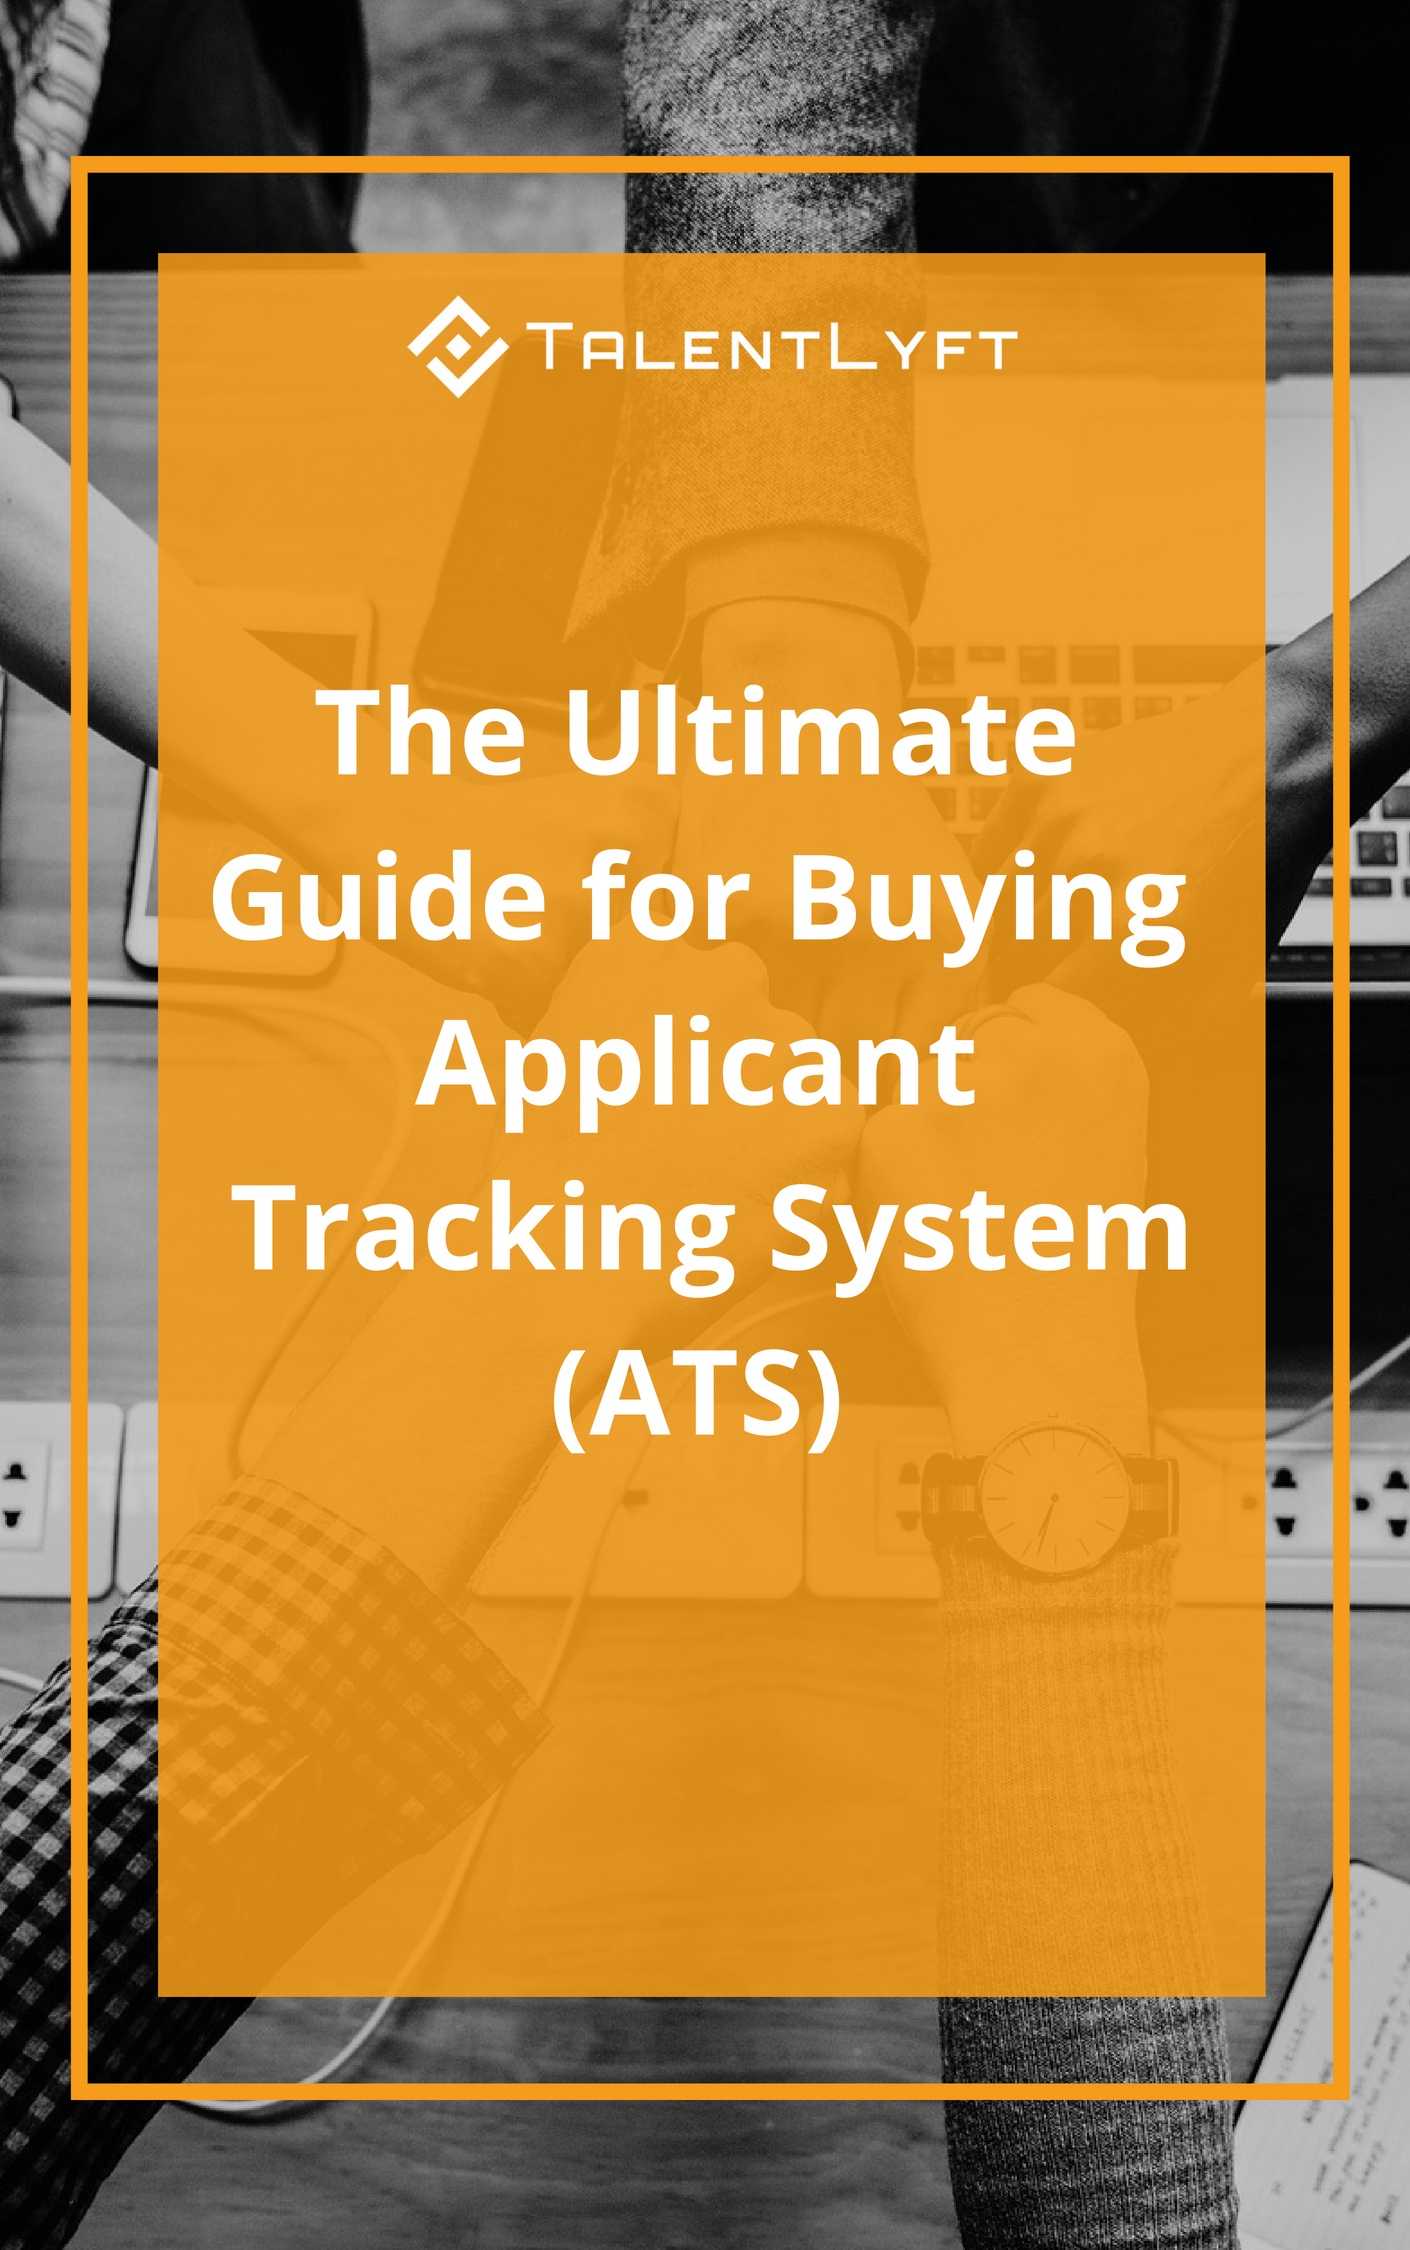 The Ultimate Guide for Buying an Applicant Tracking System (ATS).jpg